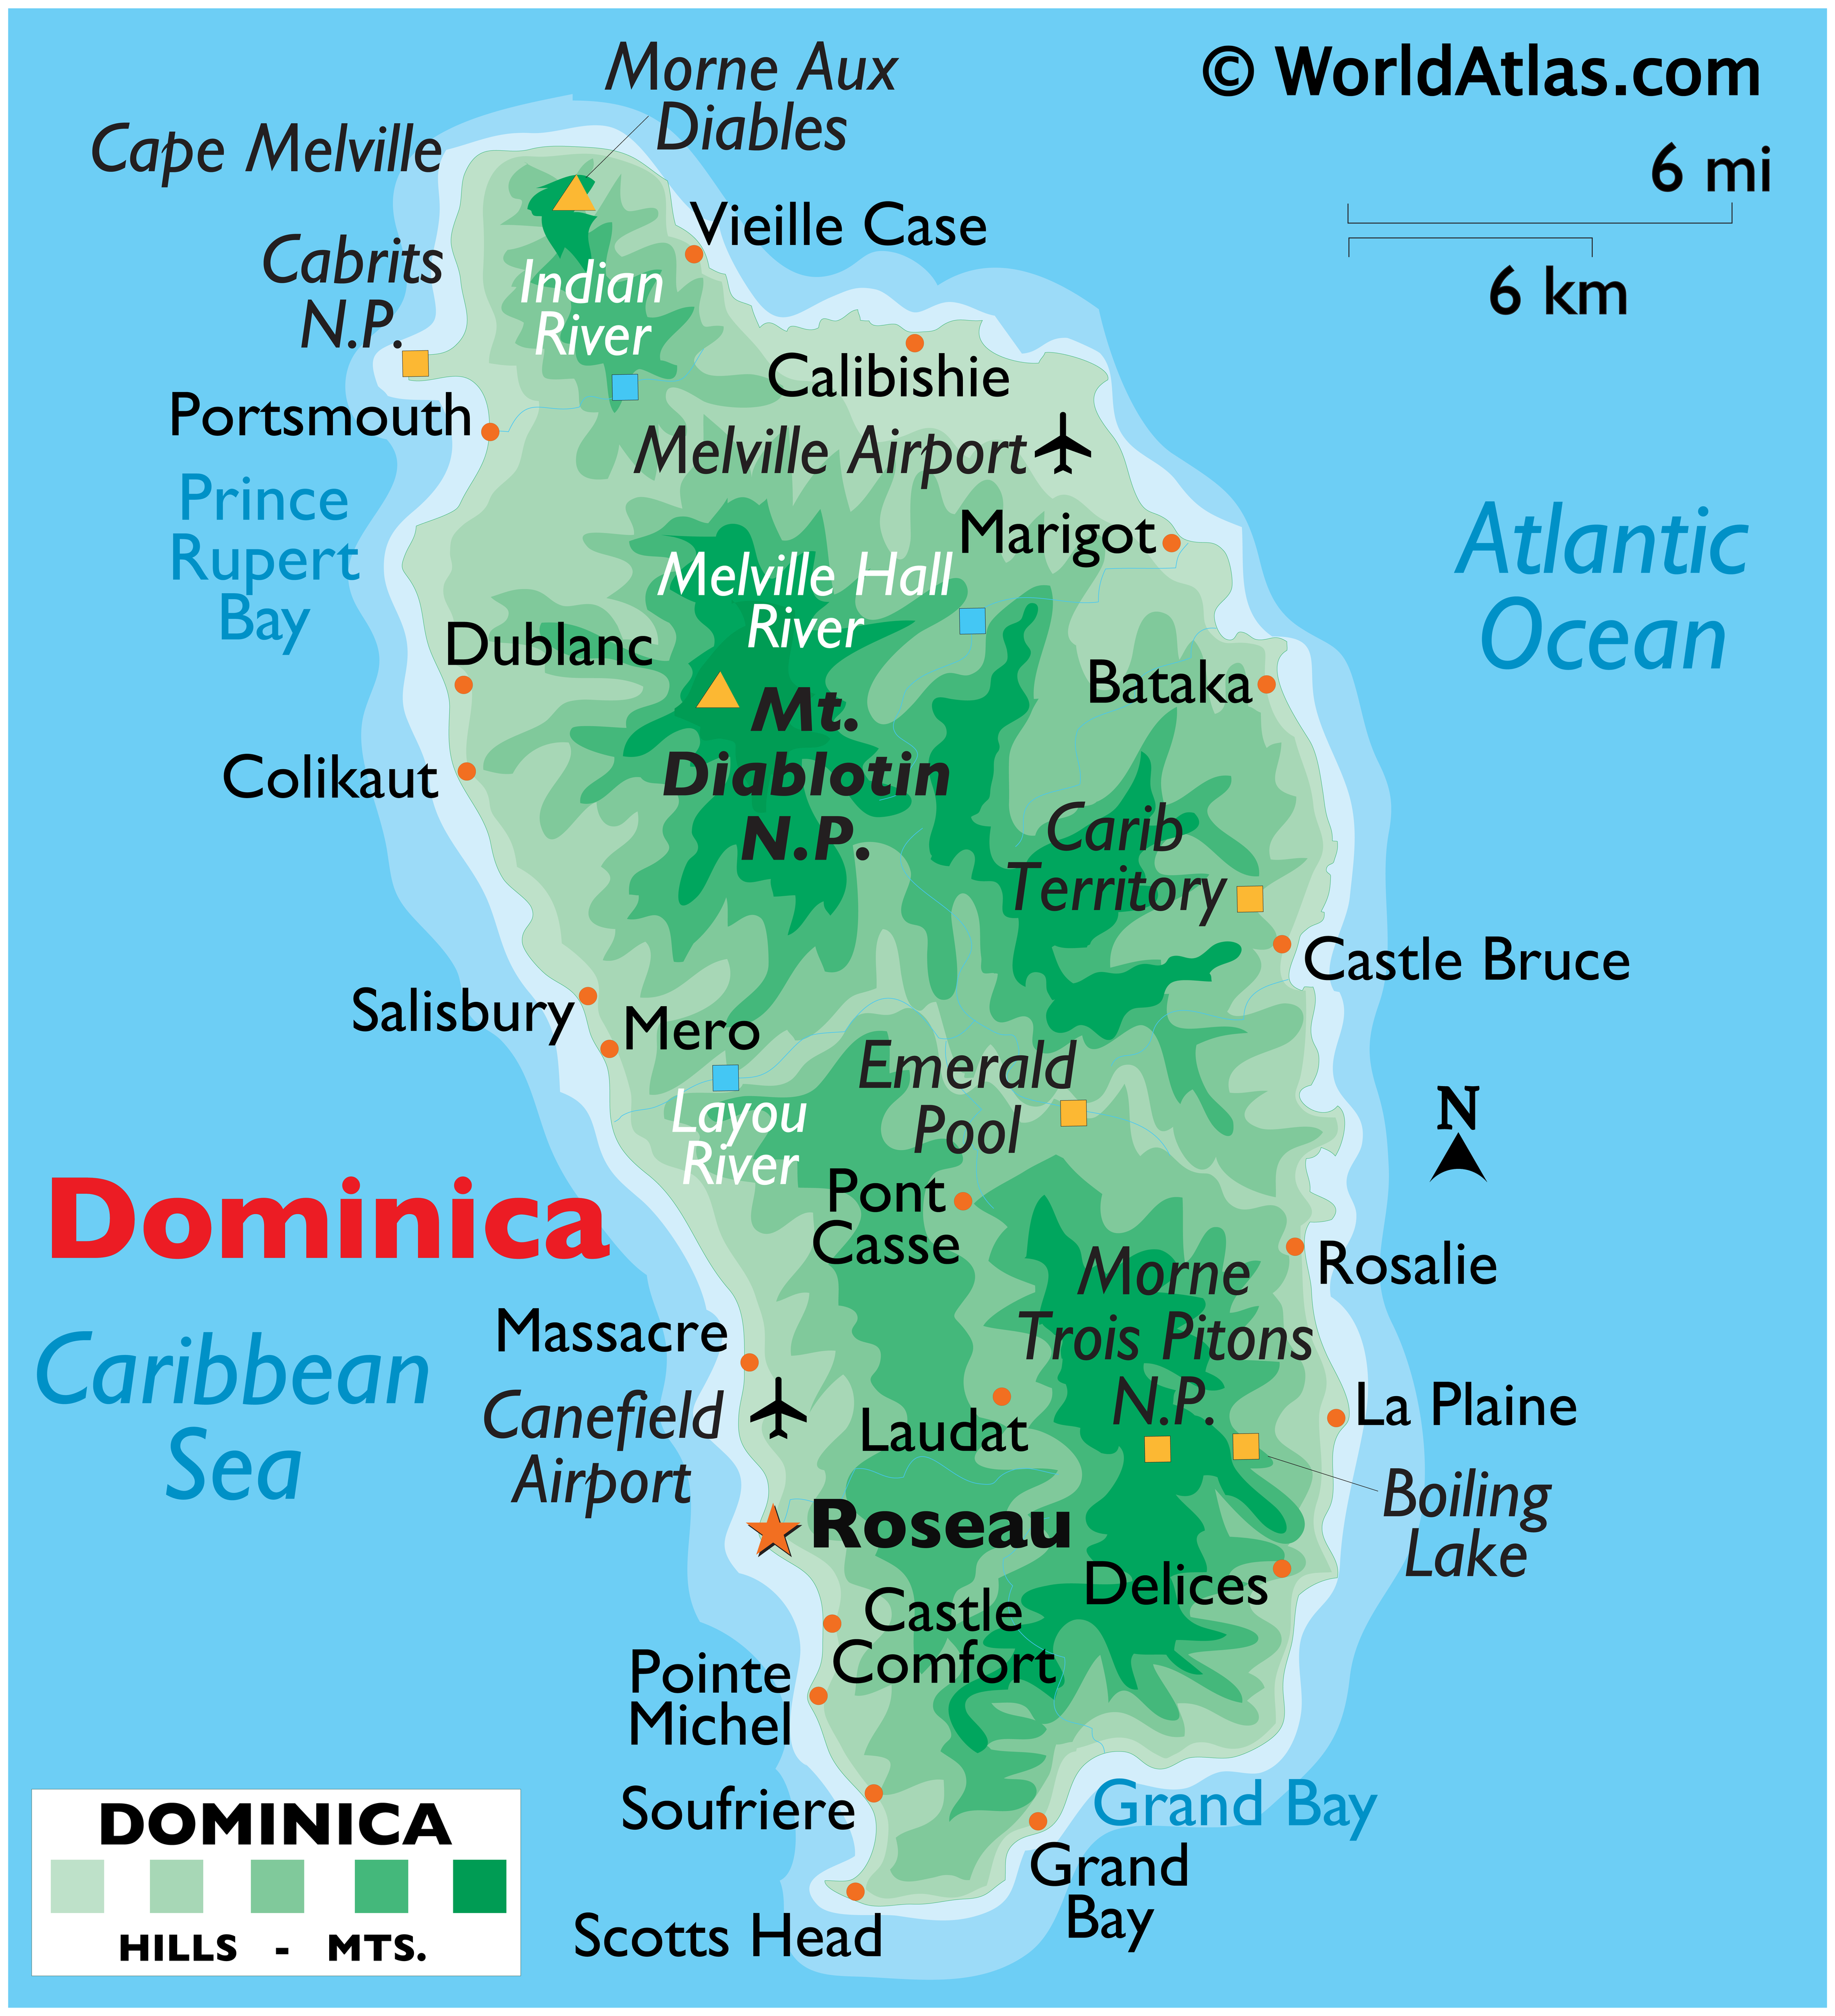 Physical Map of Dominica showing terrain, highest point, important settlements, airports, surrounding water bodies, etc.